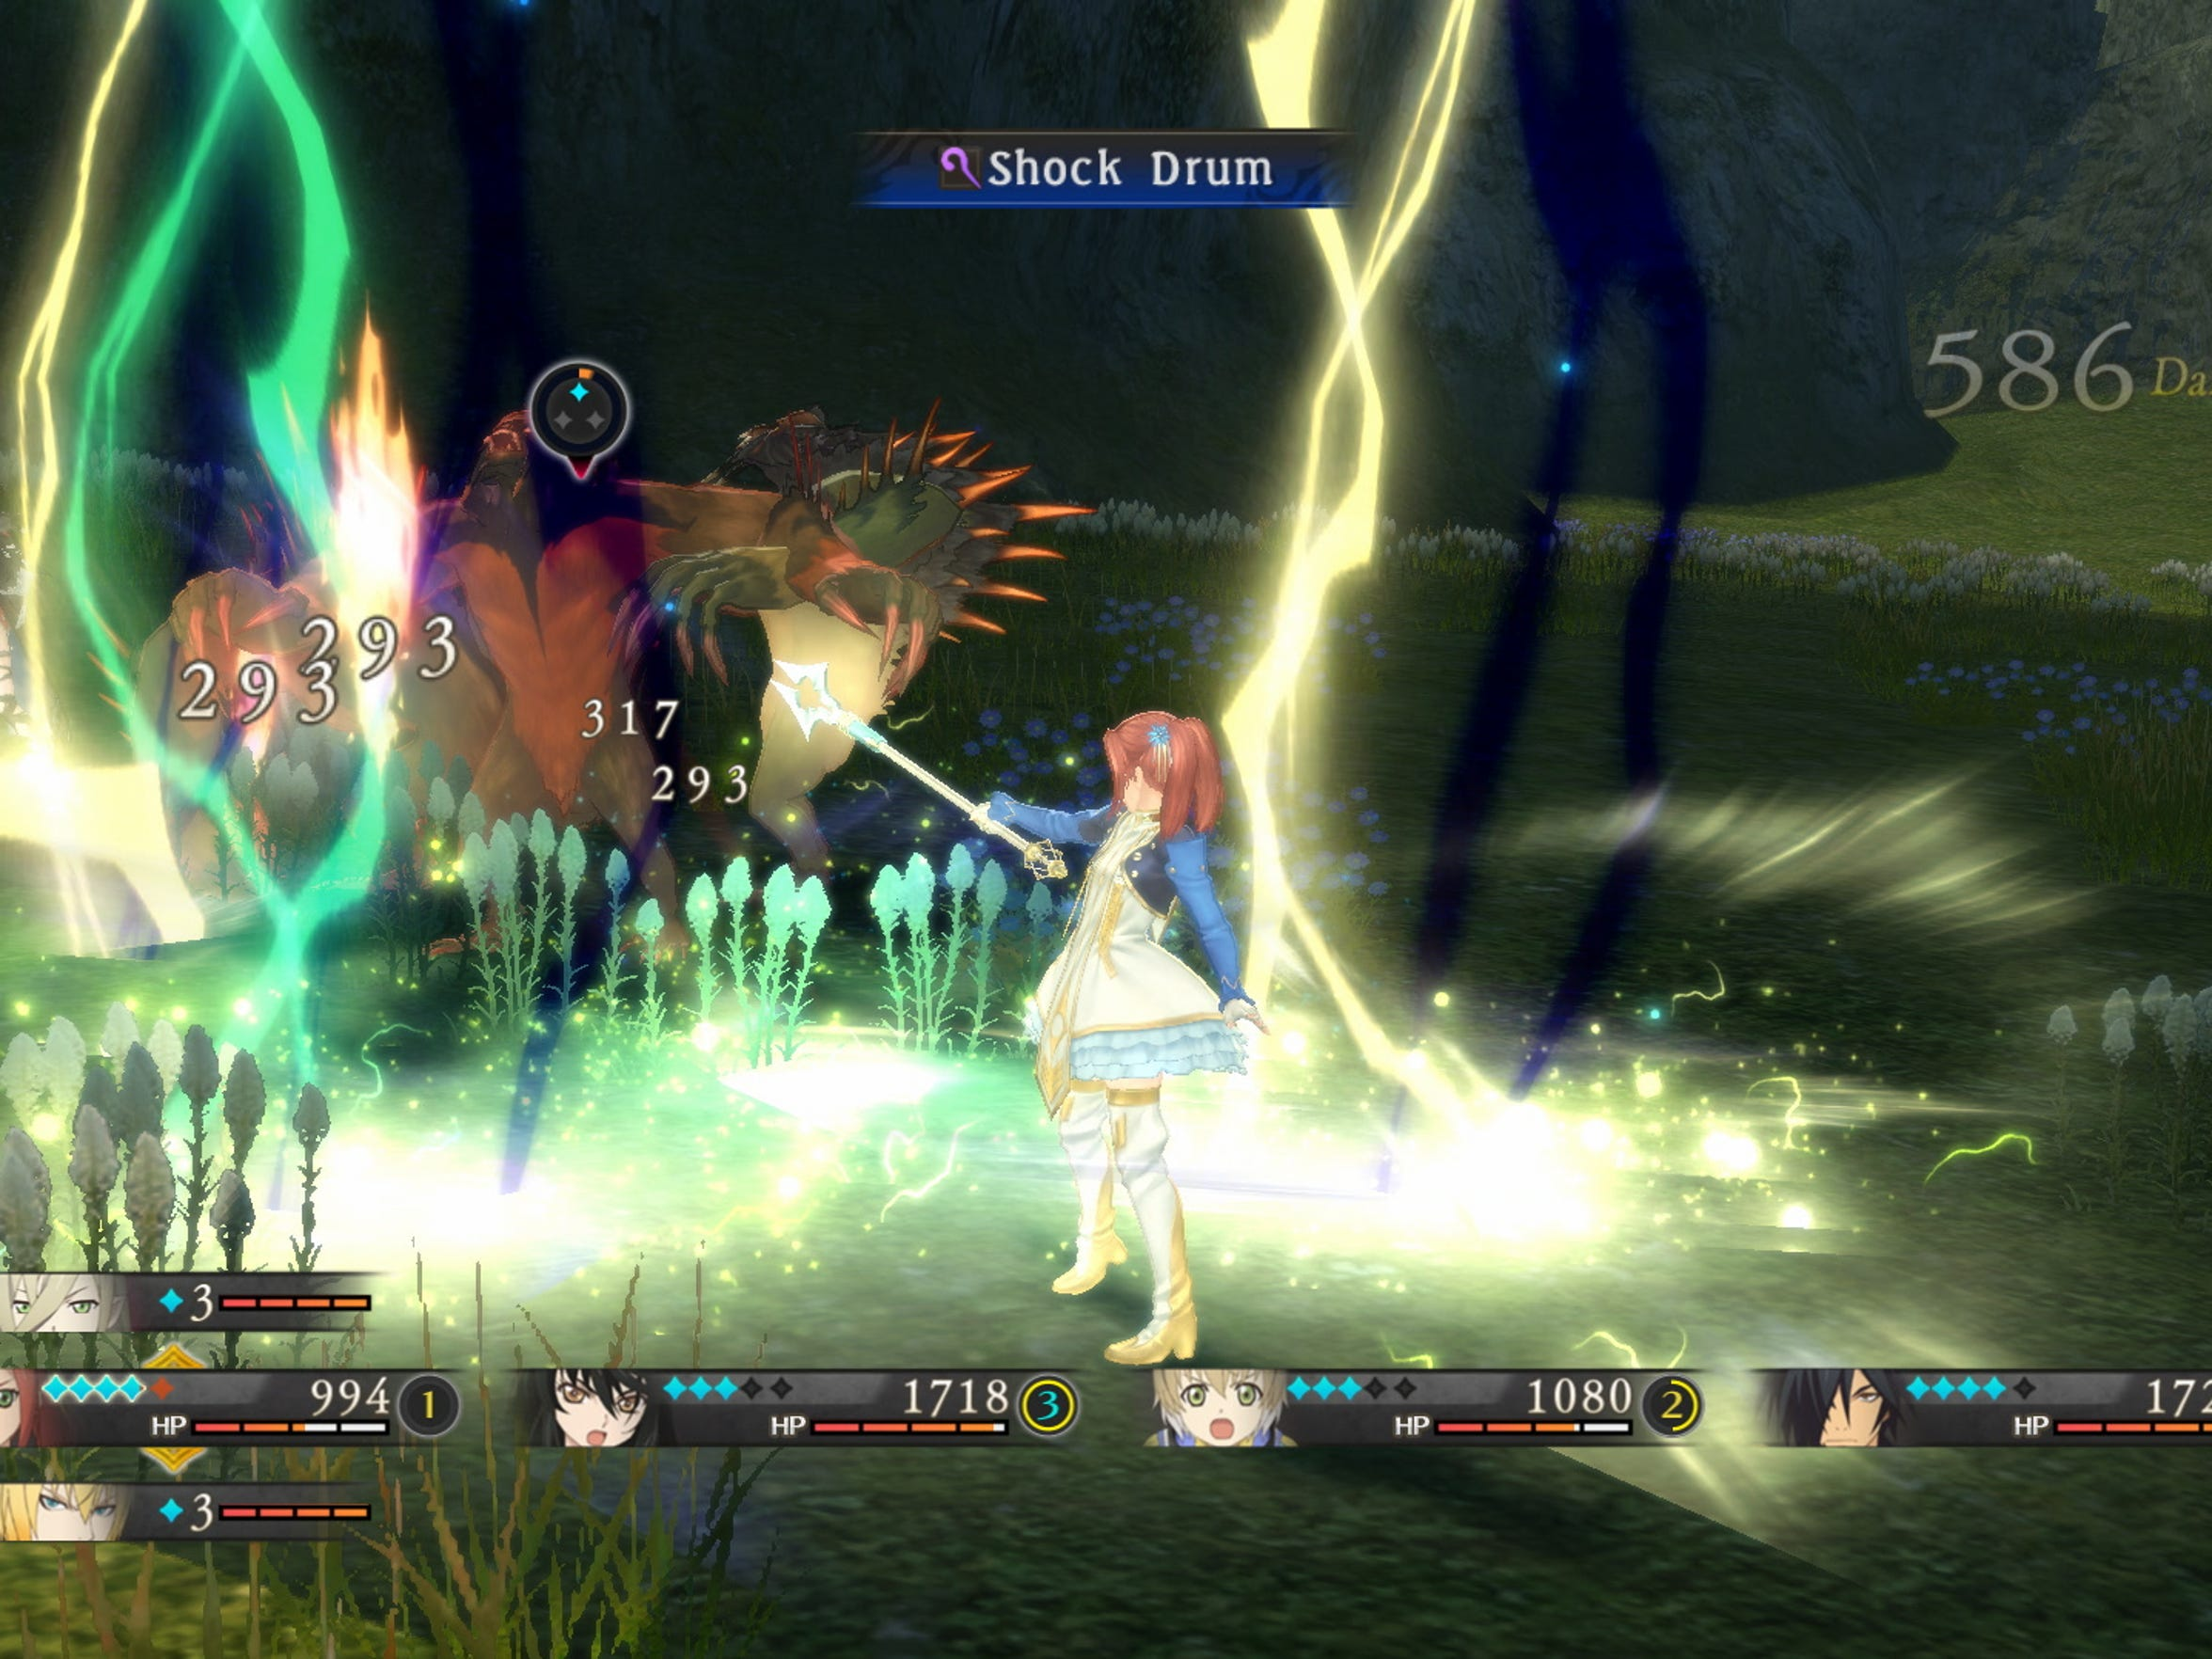 Tales of Berseria features the series' classic hybrid